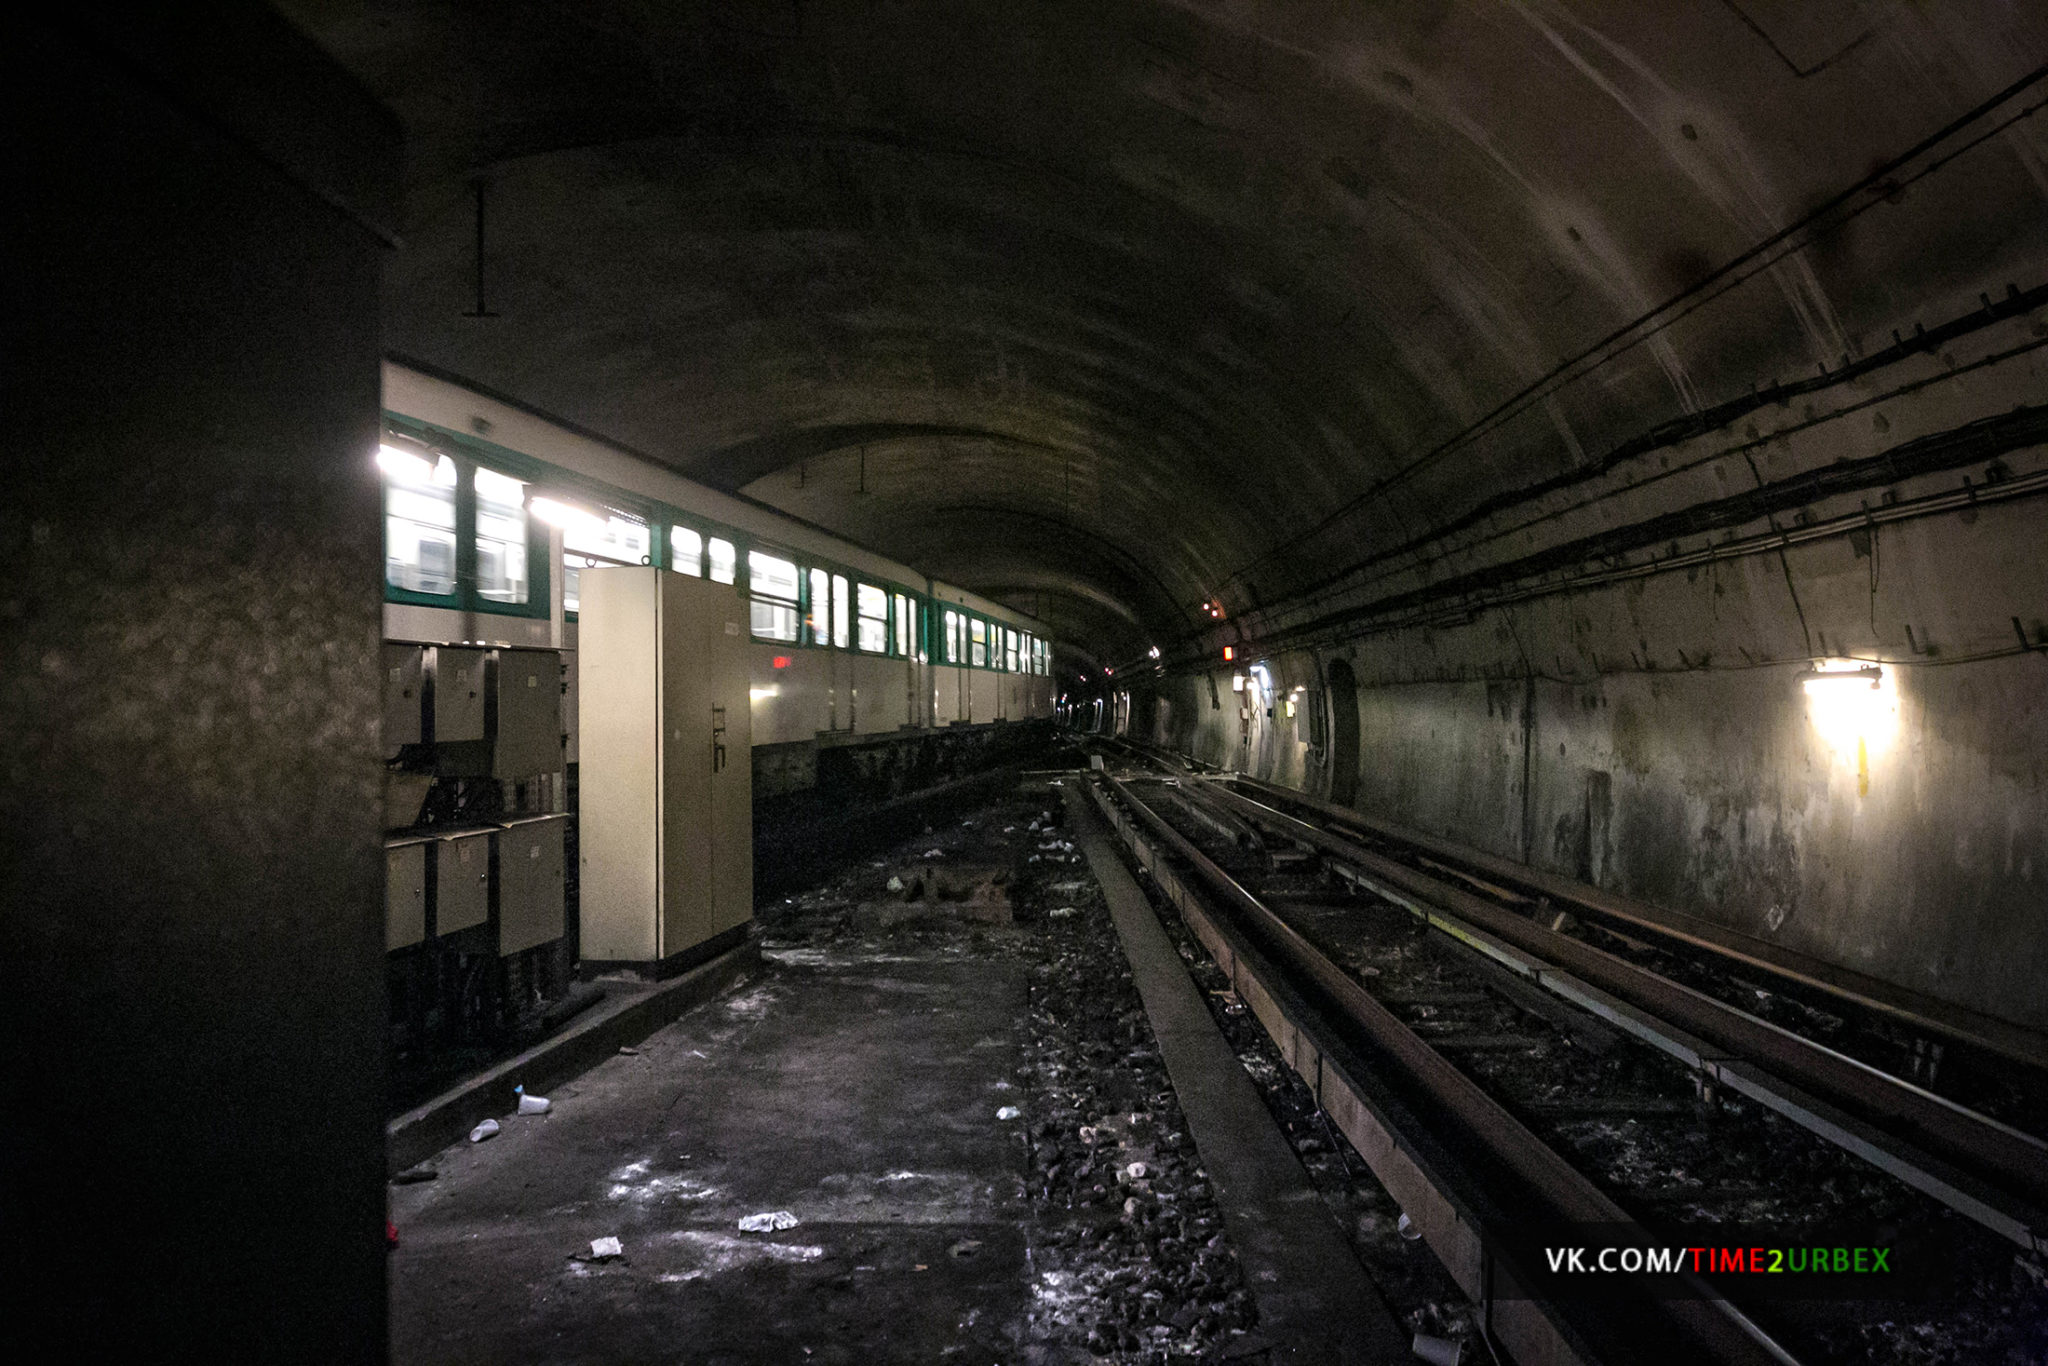 50 7 GHOST STATIONS OF THE PARIS METRO AND HOW TO GET INTO THE ILLEGALLY + UNUSUAL TUNNELS + RER